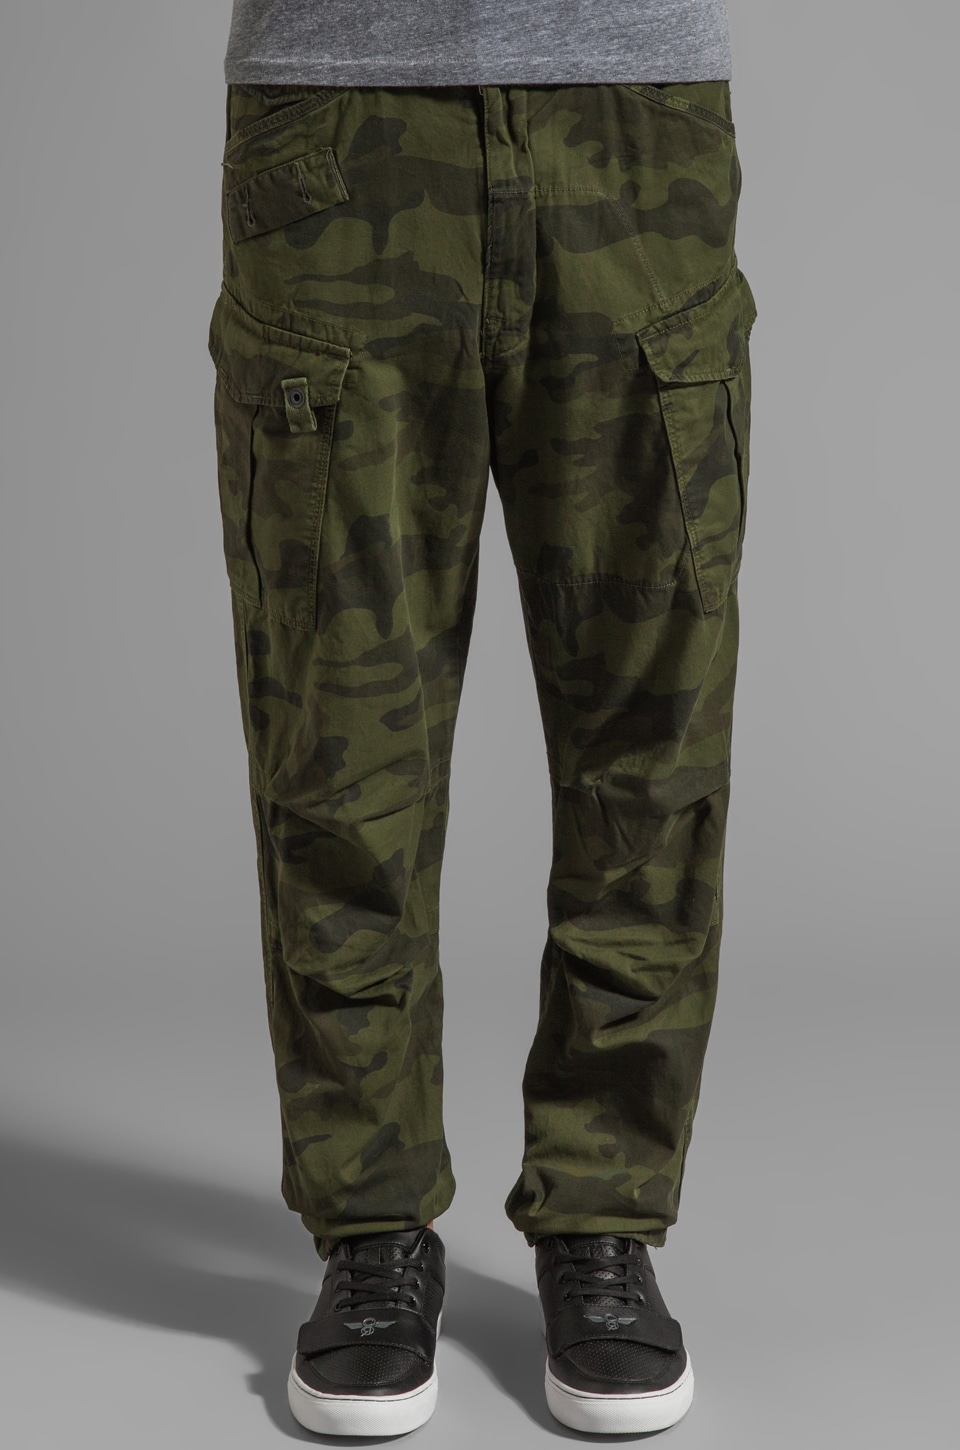 G-Star Rovic Extra Loose Tapered Pant in Bright Rovic Green